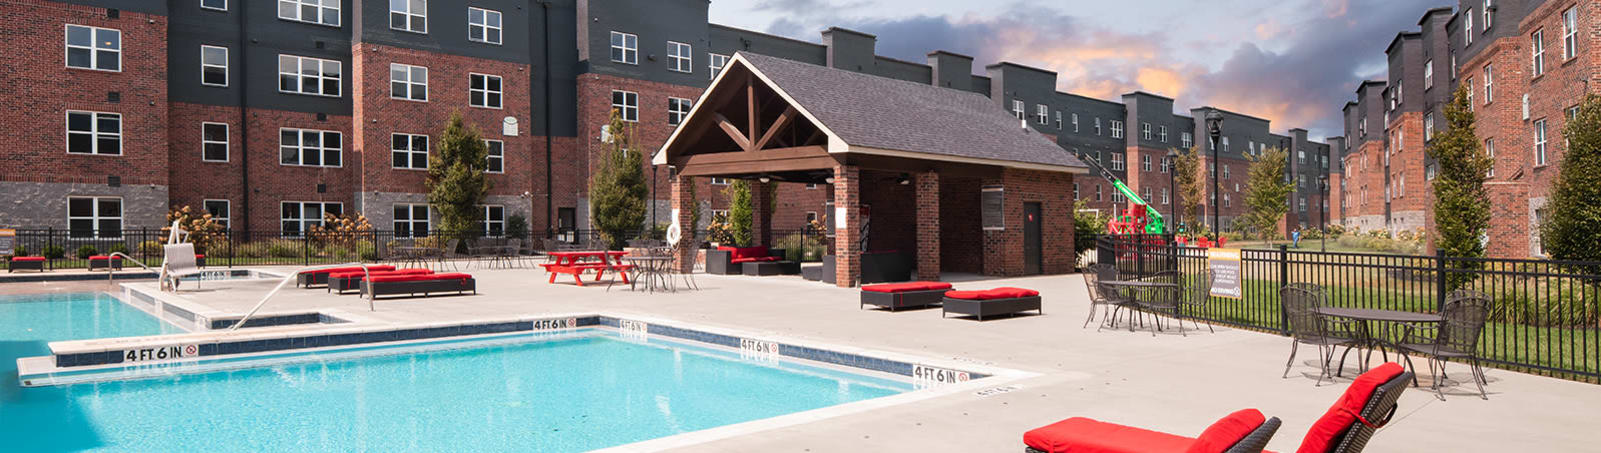 View amenities at Trifecta Apartments in Louisville, Kentucky.